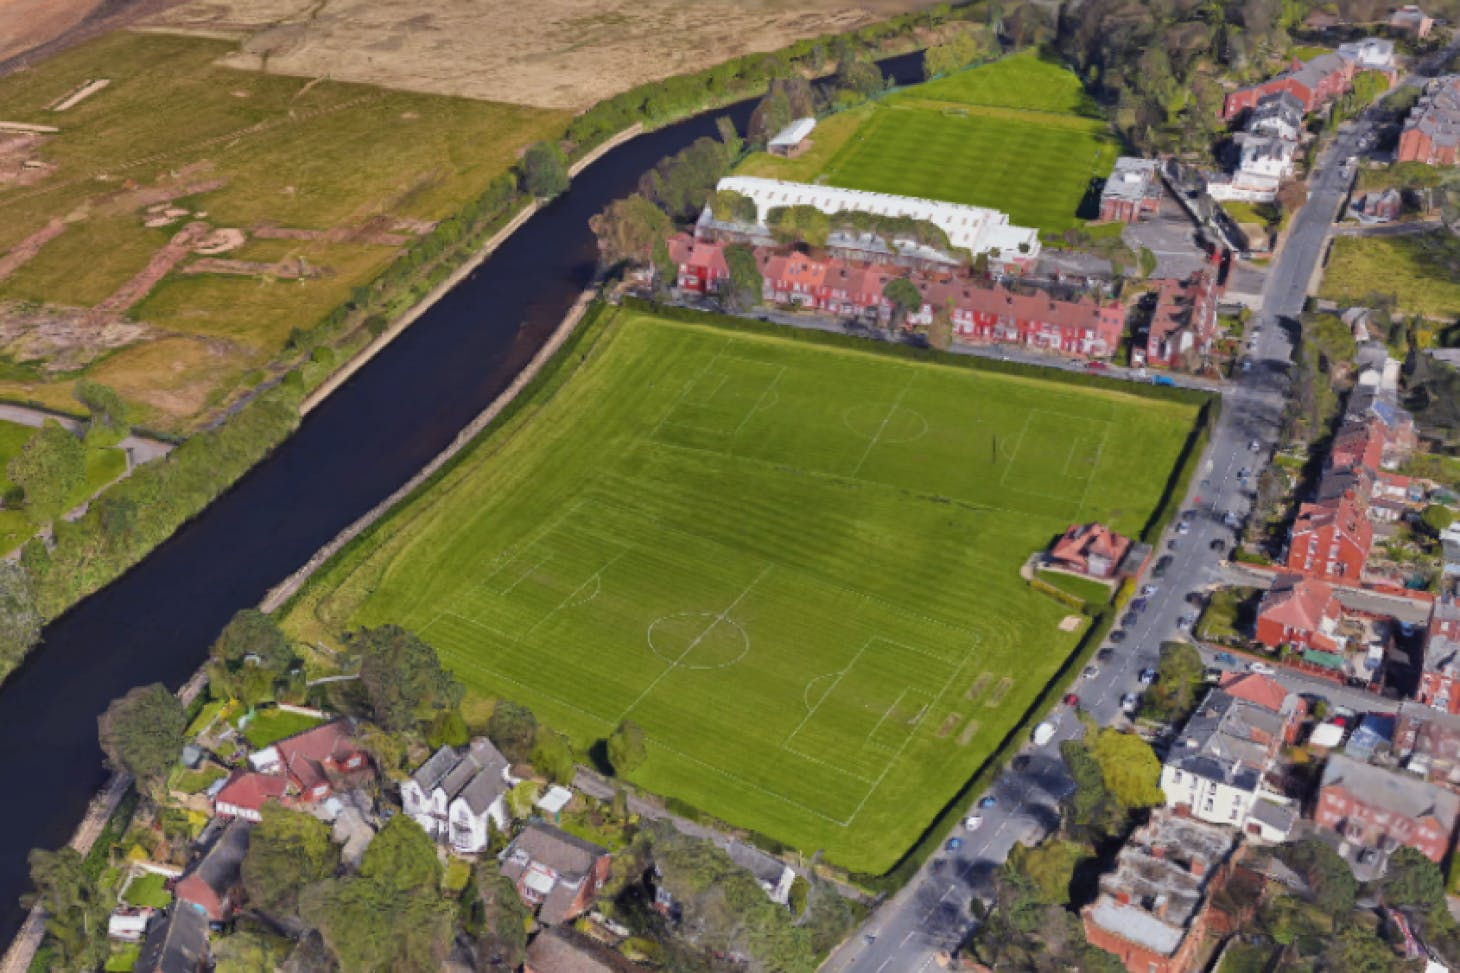 Lower Broughton Playing Fields 11 a side | Grass football pitch